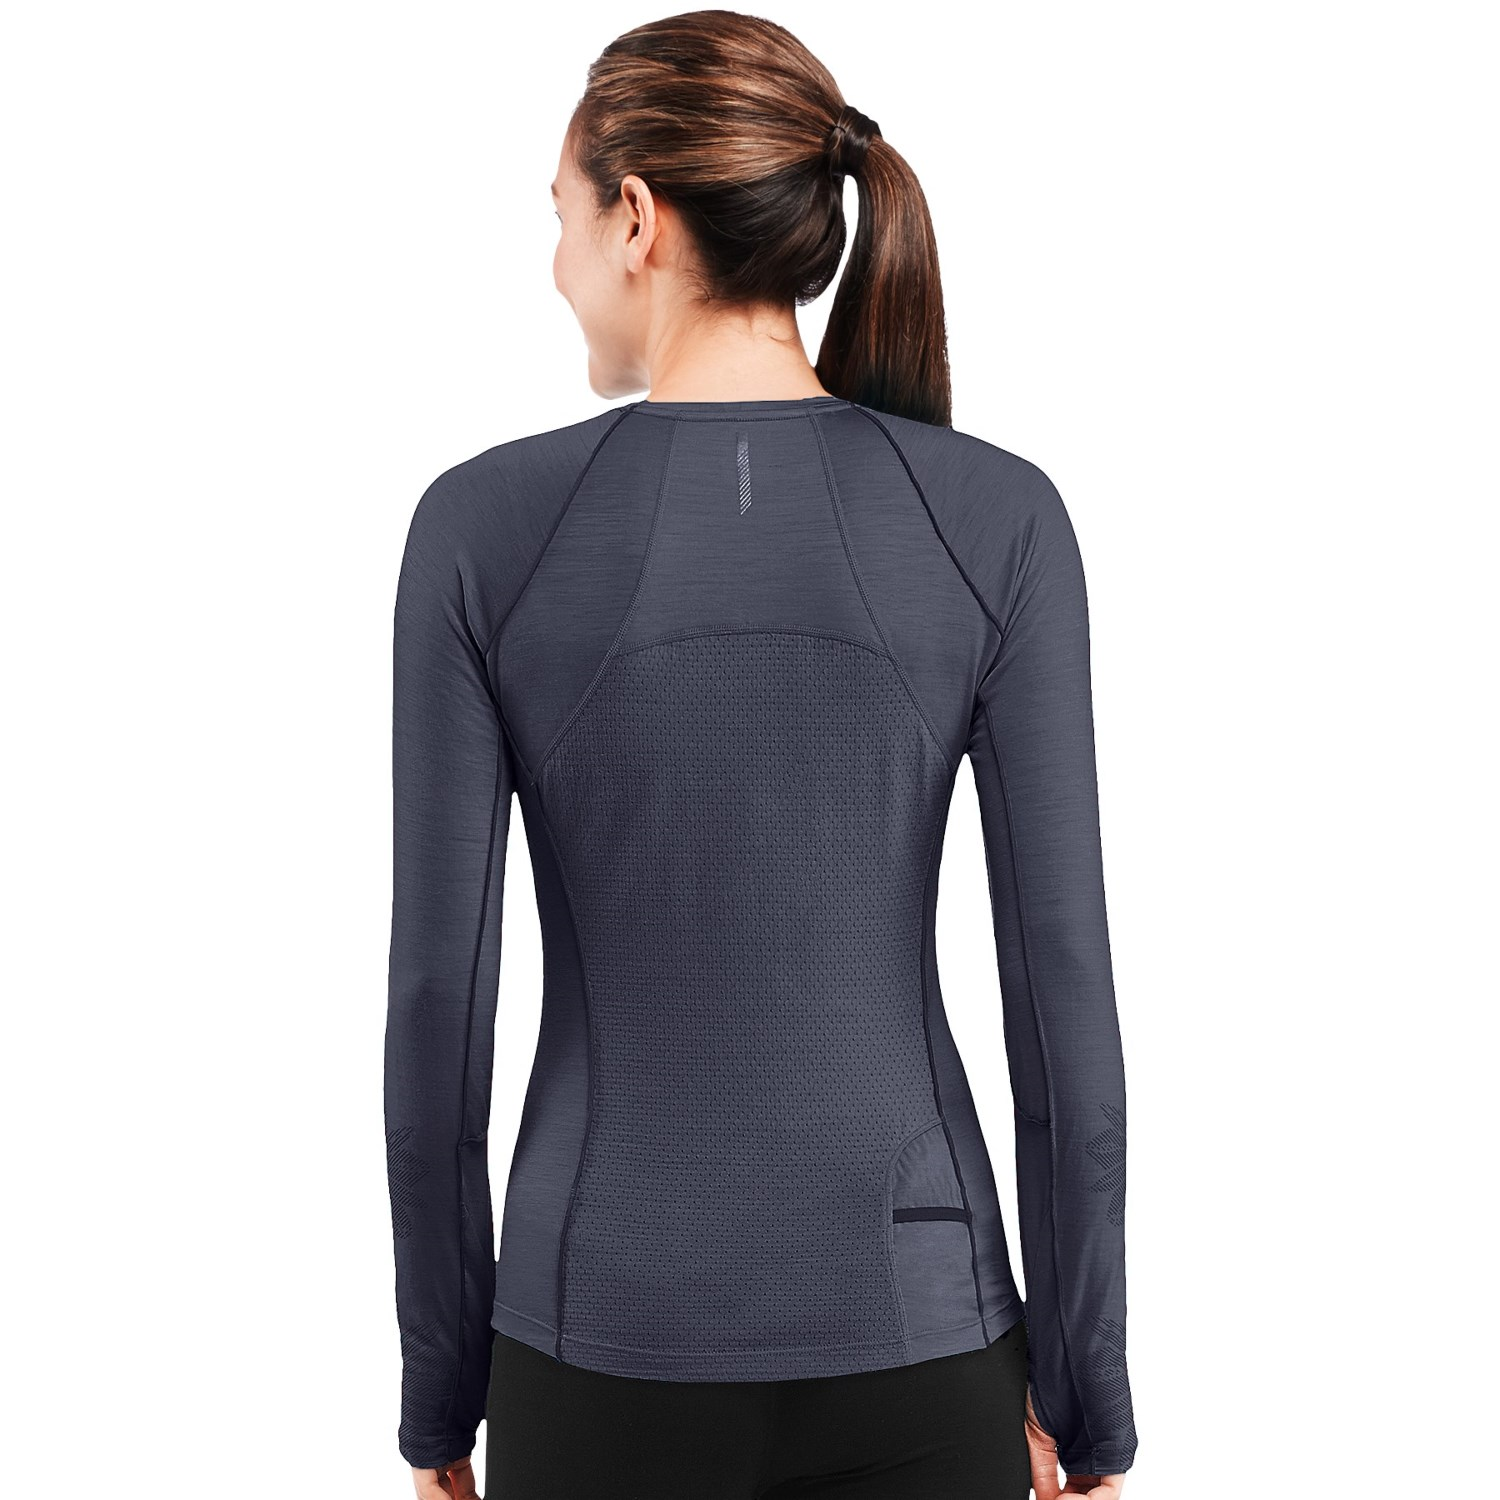 Icebreaker flash running shirt for women 7502m save 72 for Merino wool shirt womens